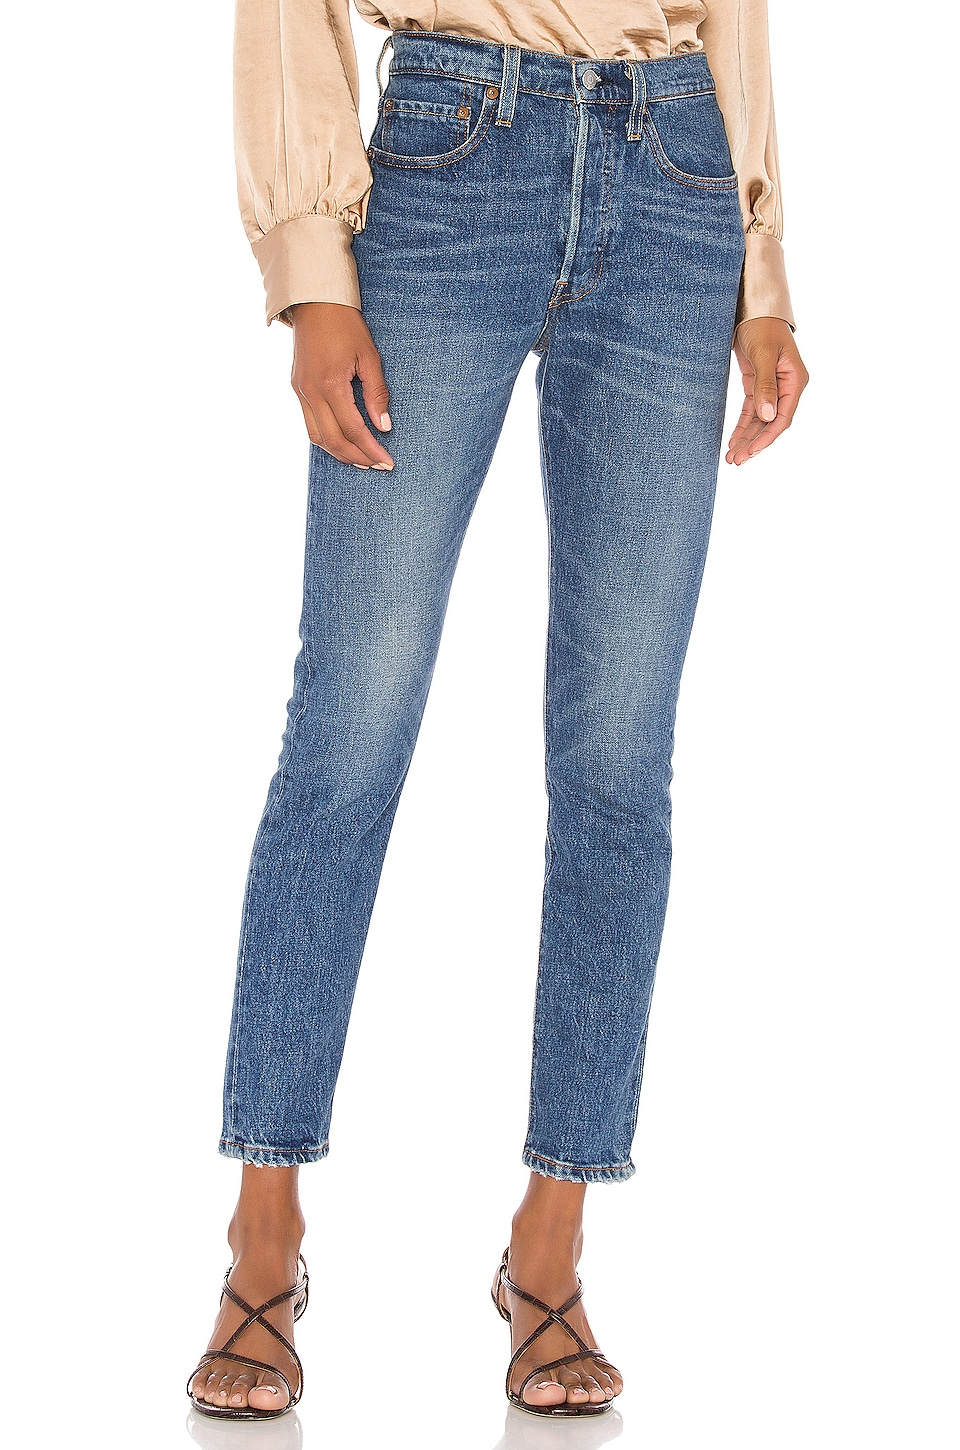 LEVI'S 501 Skinny in We The People